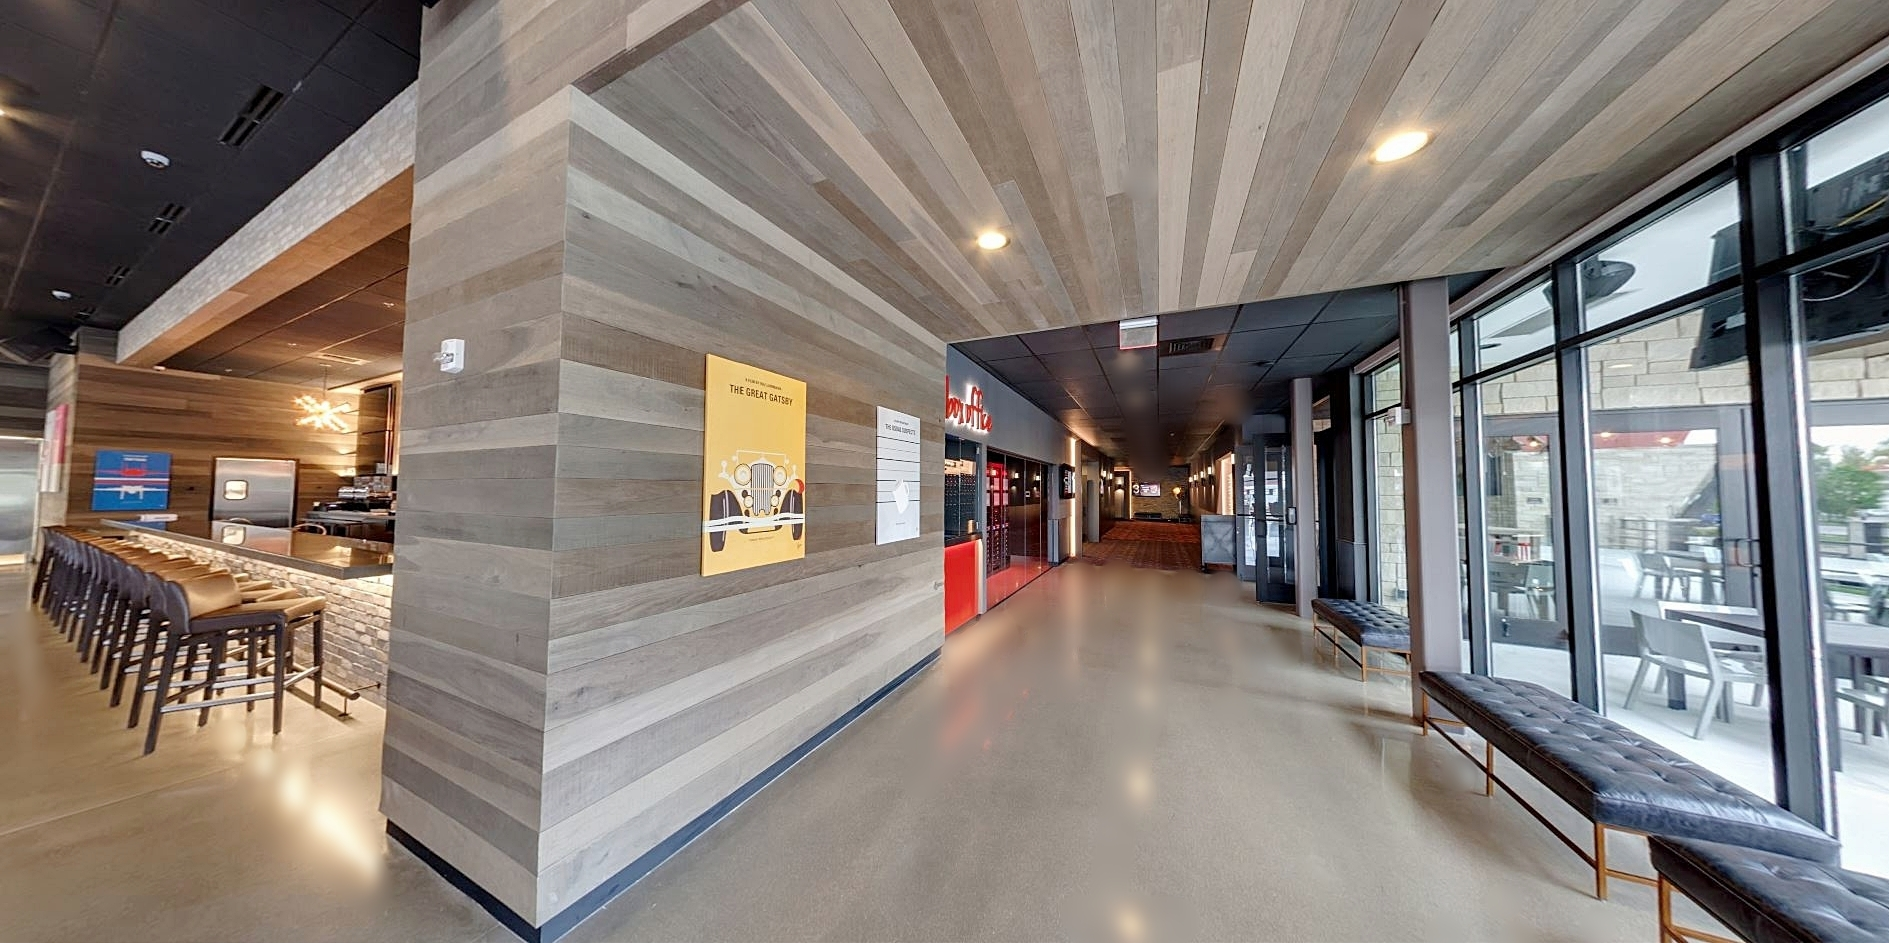 Envision Movie Theater Eutree Forest Free Pecan Custom Wood Wall Paneling 5.JPG